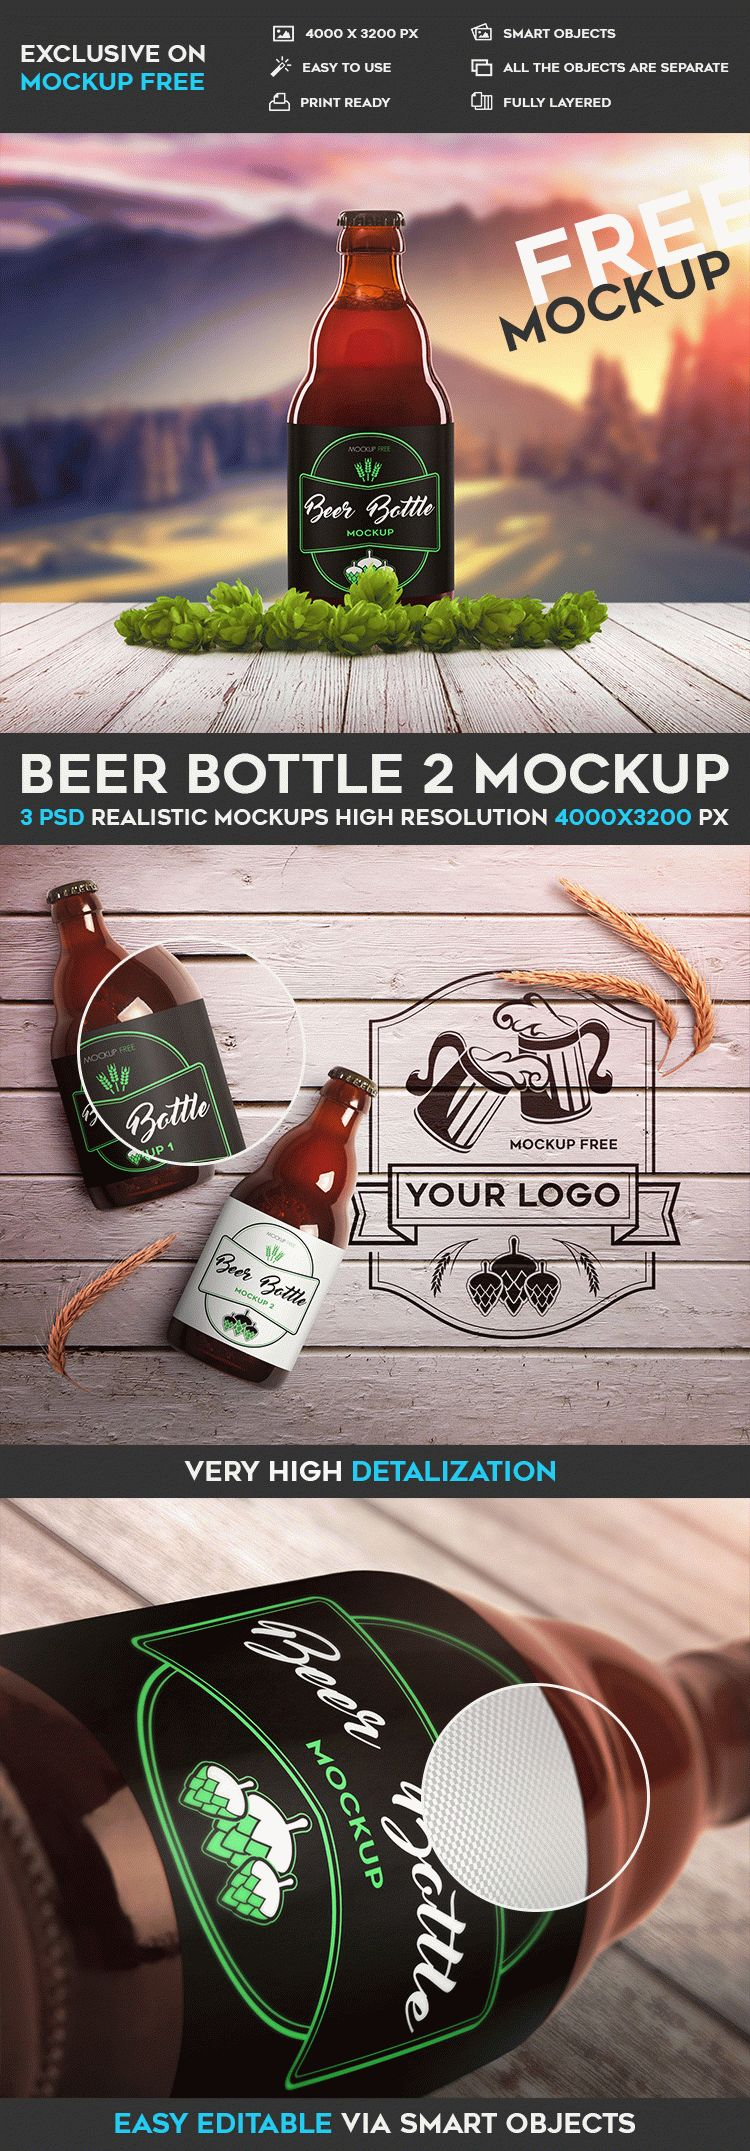 Beer Bottle Mockup Template